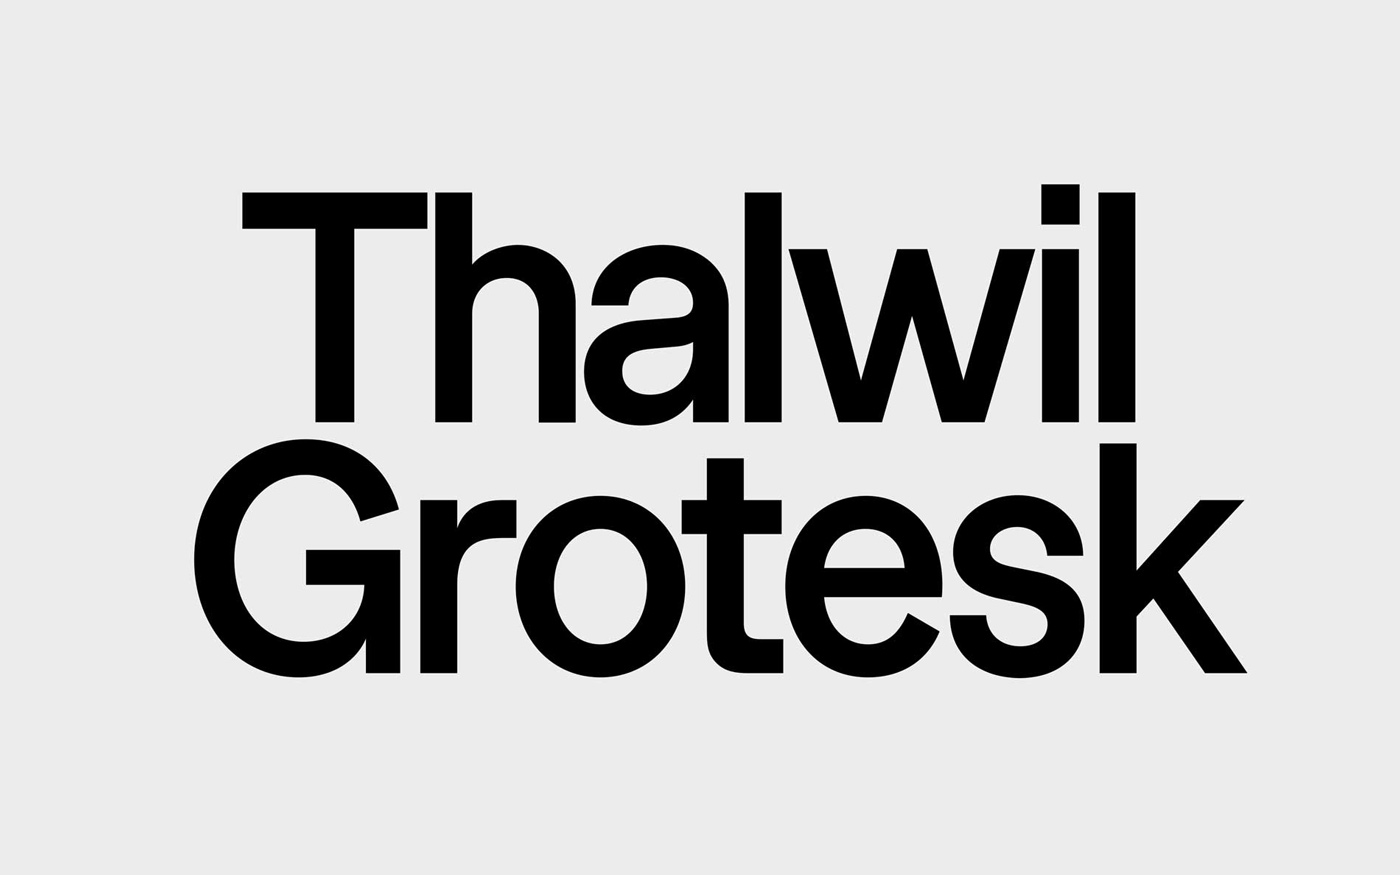 12 collide24 Raphael Jérôme Schmitt Fabio Furlani - Raphael Jérôme Schmitt and Fabio Furlani on 'Thalwil Grotesk', a typeface inspired by the old letterings on the signs at Swiss railway stations